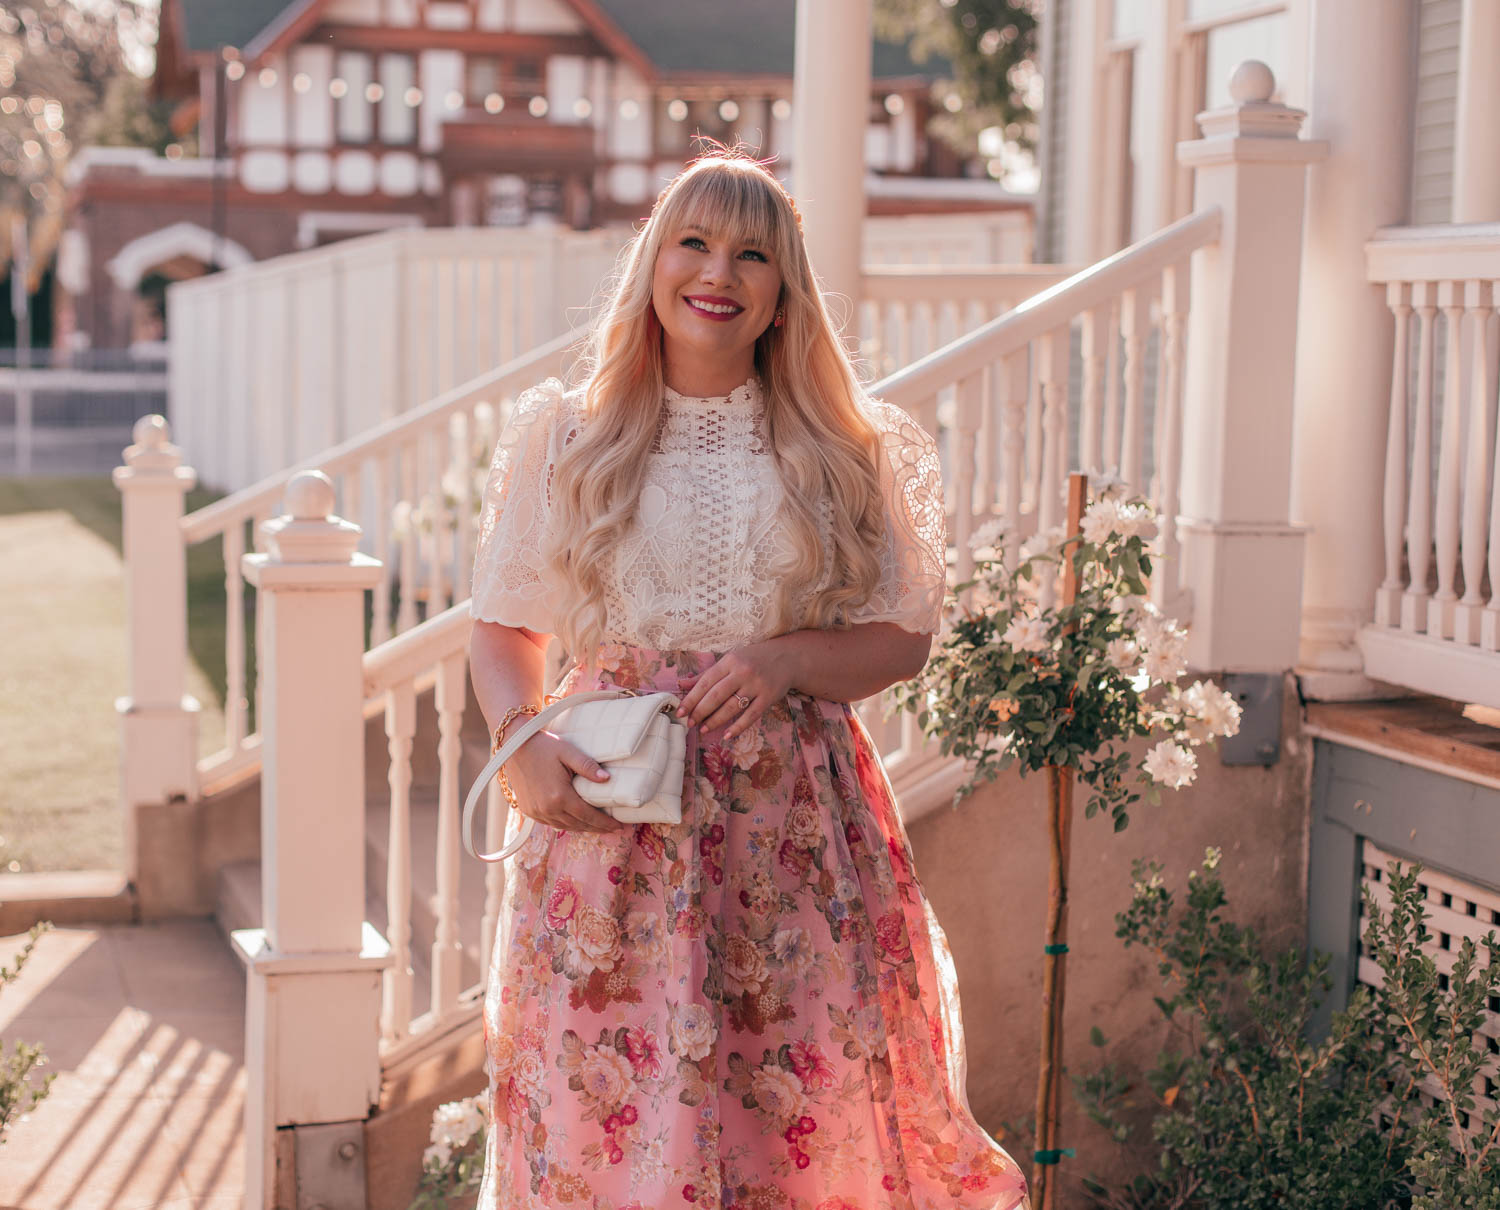 Feminine Fashion Blogger Elizabeth Hugen of Lizzie in Lace shares a feminine floral summer outfit idea including a white lace top and pink floral chicwish skirt